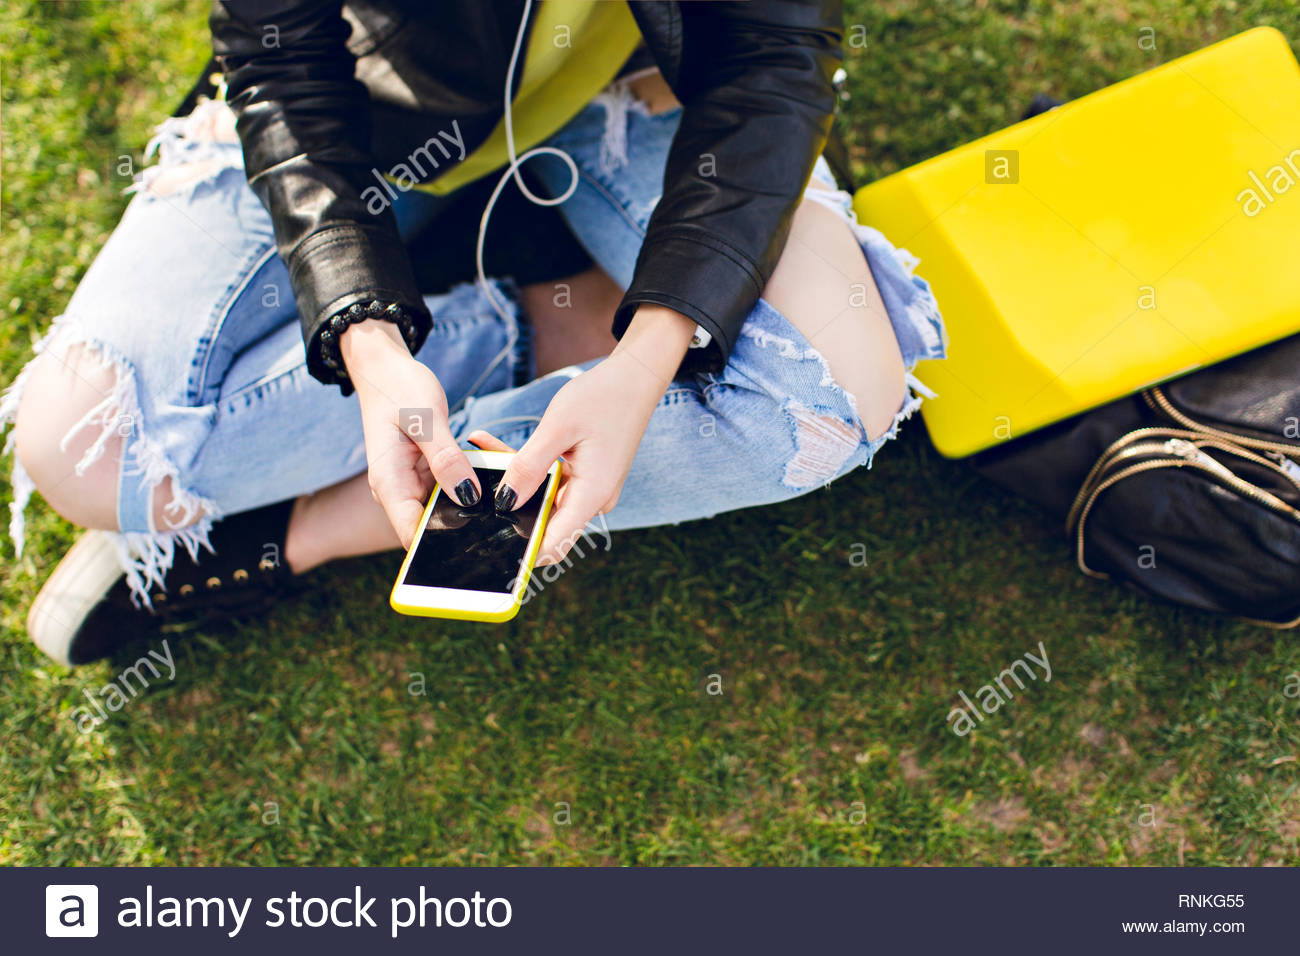 Phone in hands of a girl with ripped jeans sitting on grass, yellow laptop, black bag. View from above. - Stock Image